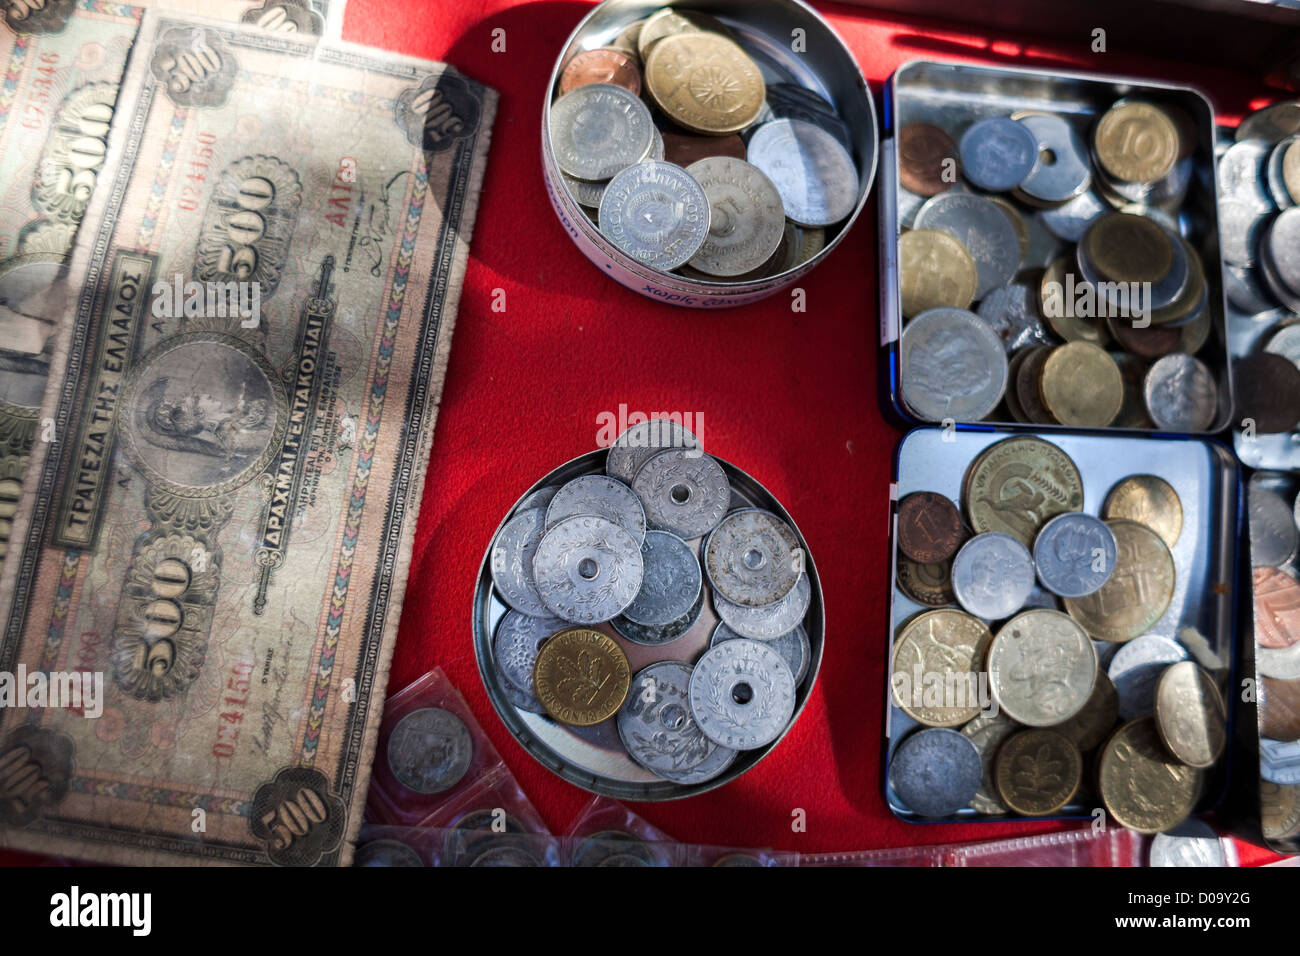 Old Greek drachma coins and bank notes for sale during Saturday antique bazaar in Bit Bazaar antiques street market - Stock Image